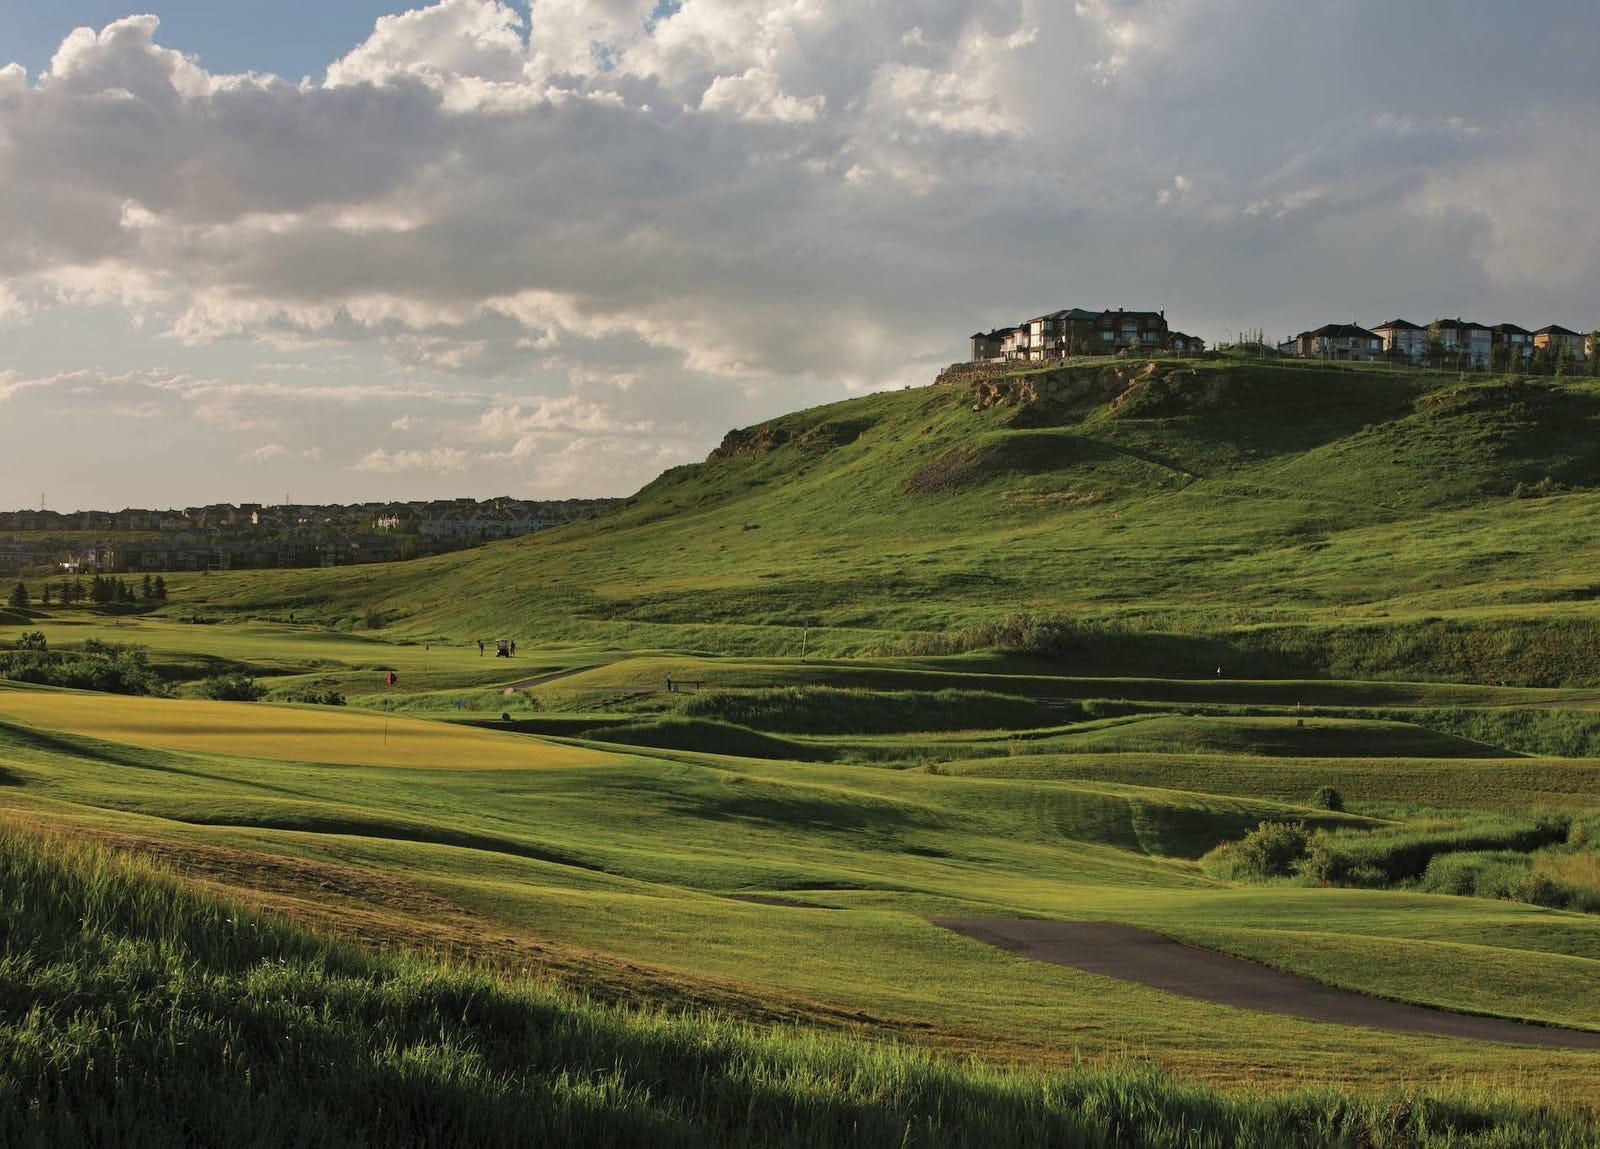 Golf course on a hill